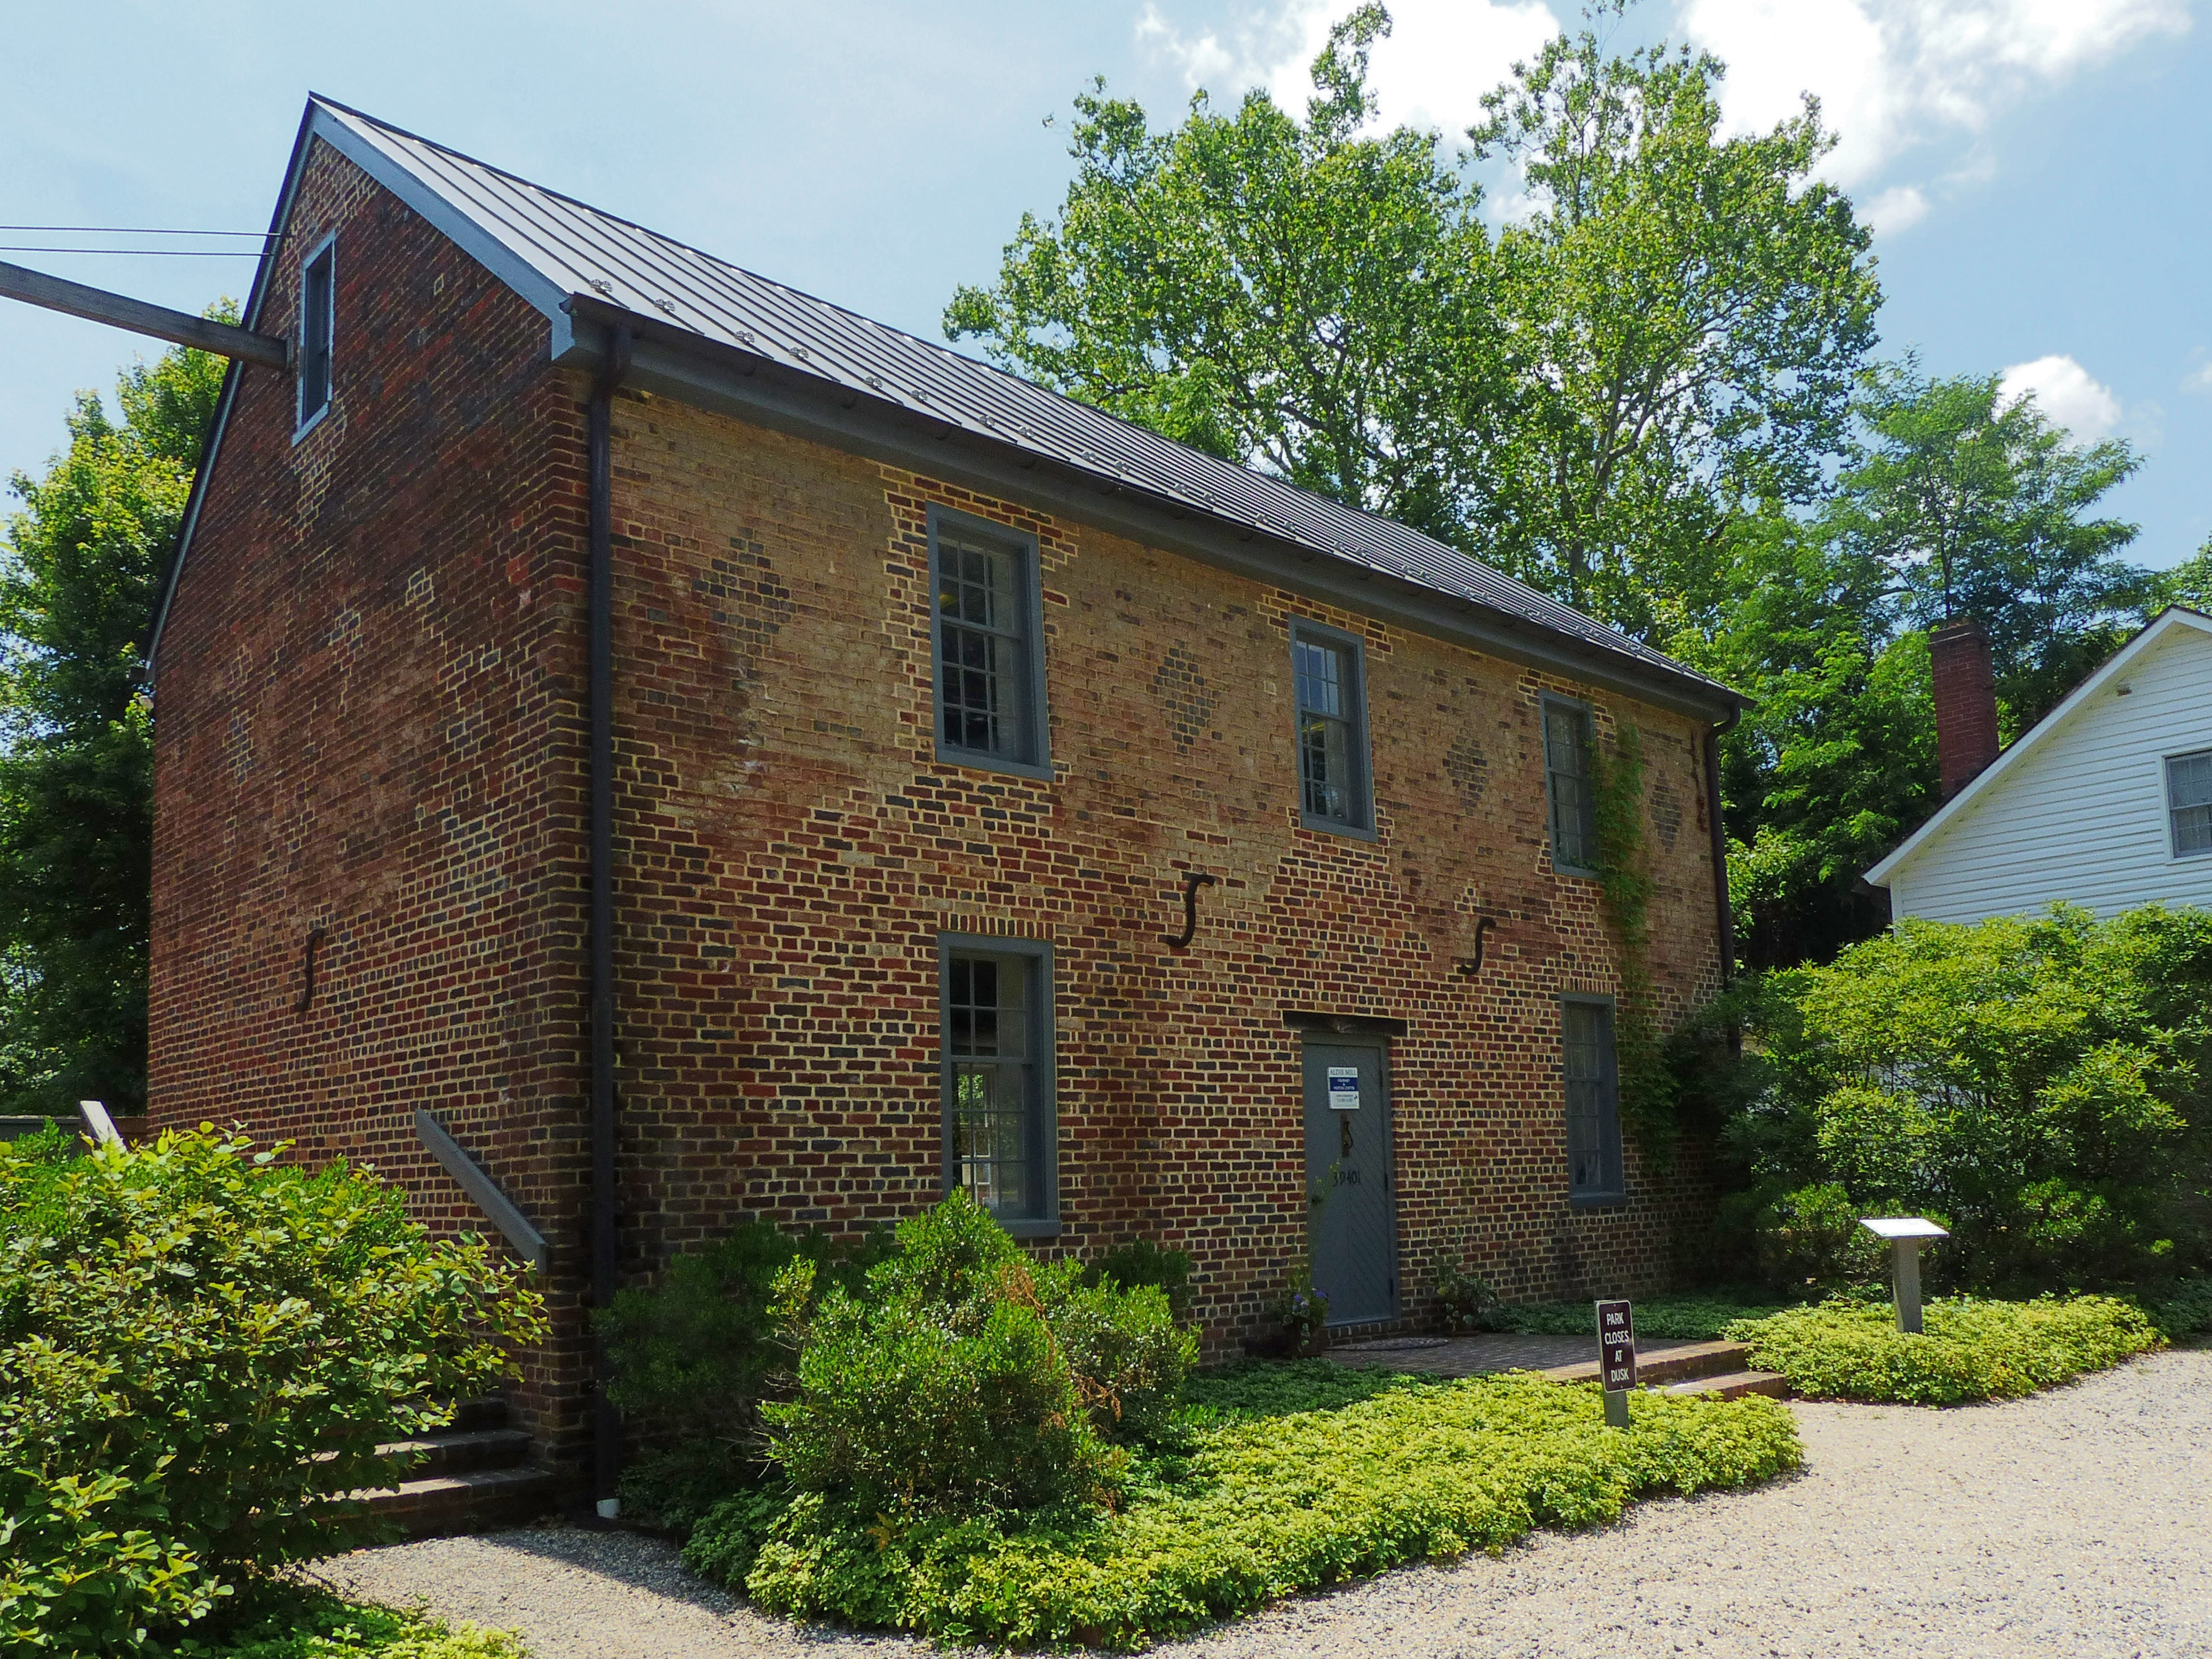 The Granary / Visitor Center at Aldie Mill